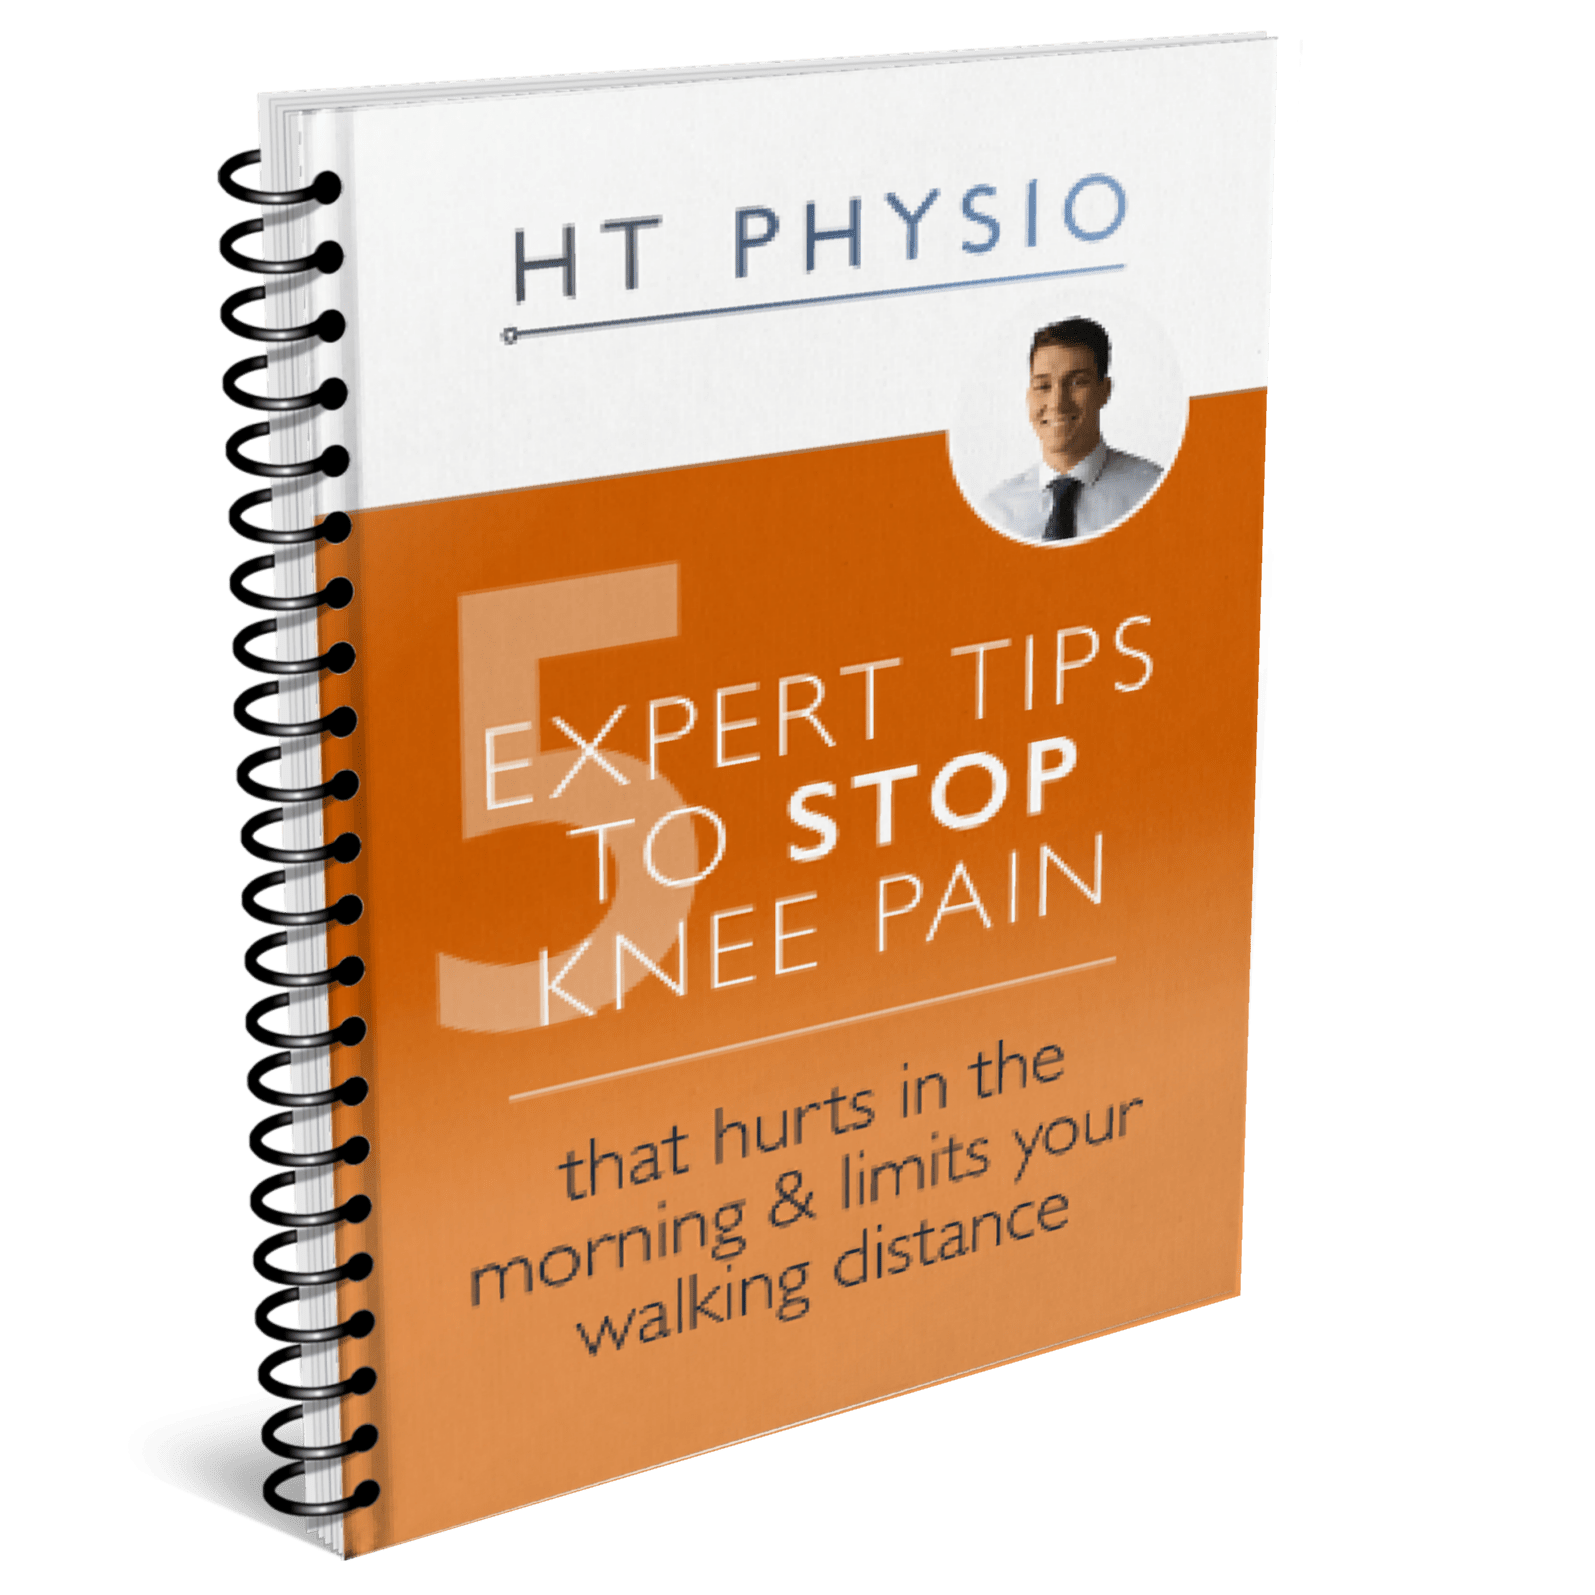 physio farnham, physiotherapy farnham, physiotherapist farnham, farnham knee pain specialist, physiotherapy for knee pain, knee pain treatment